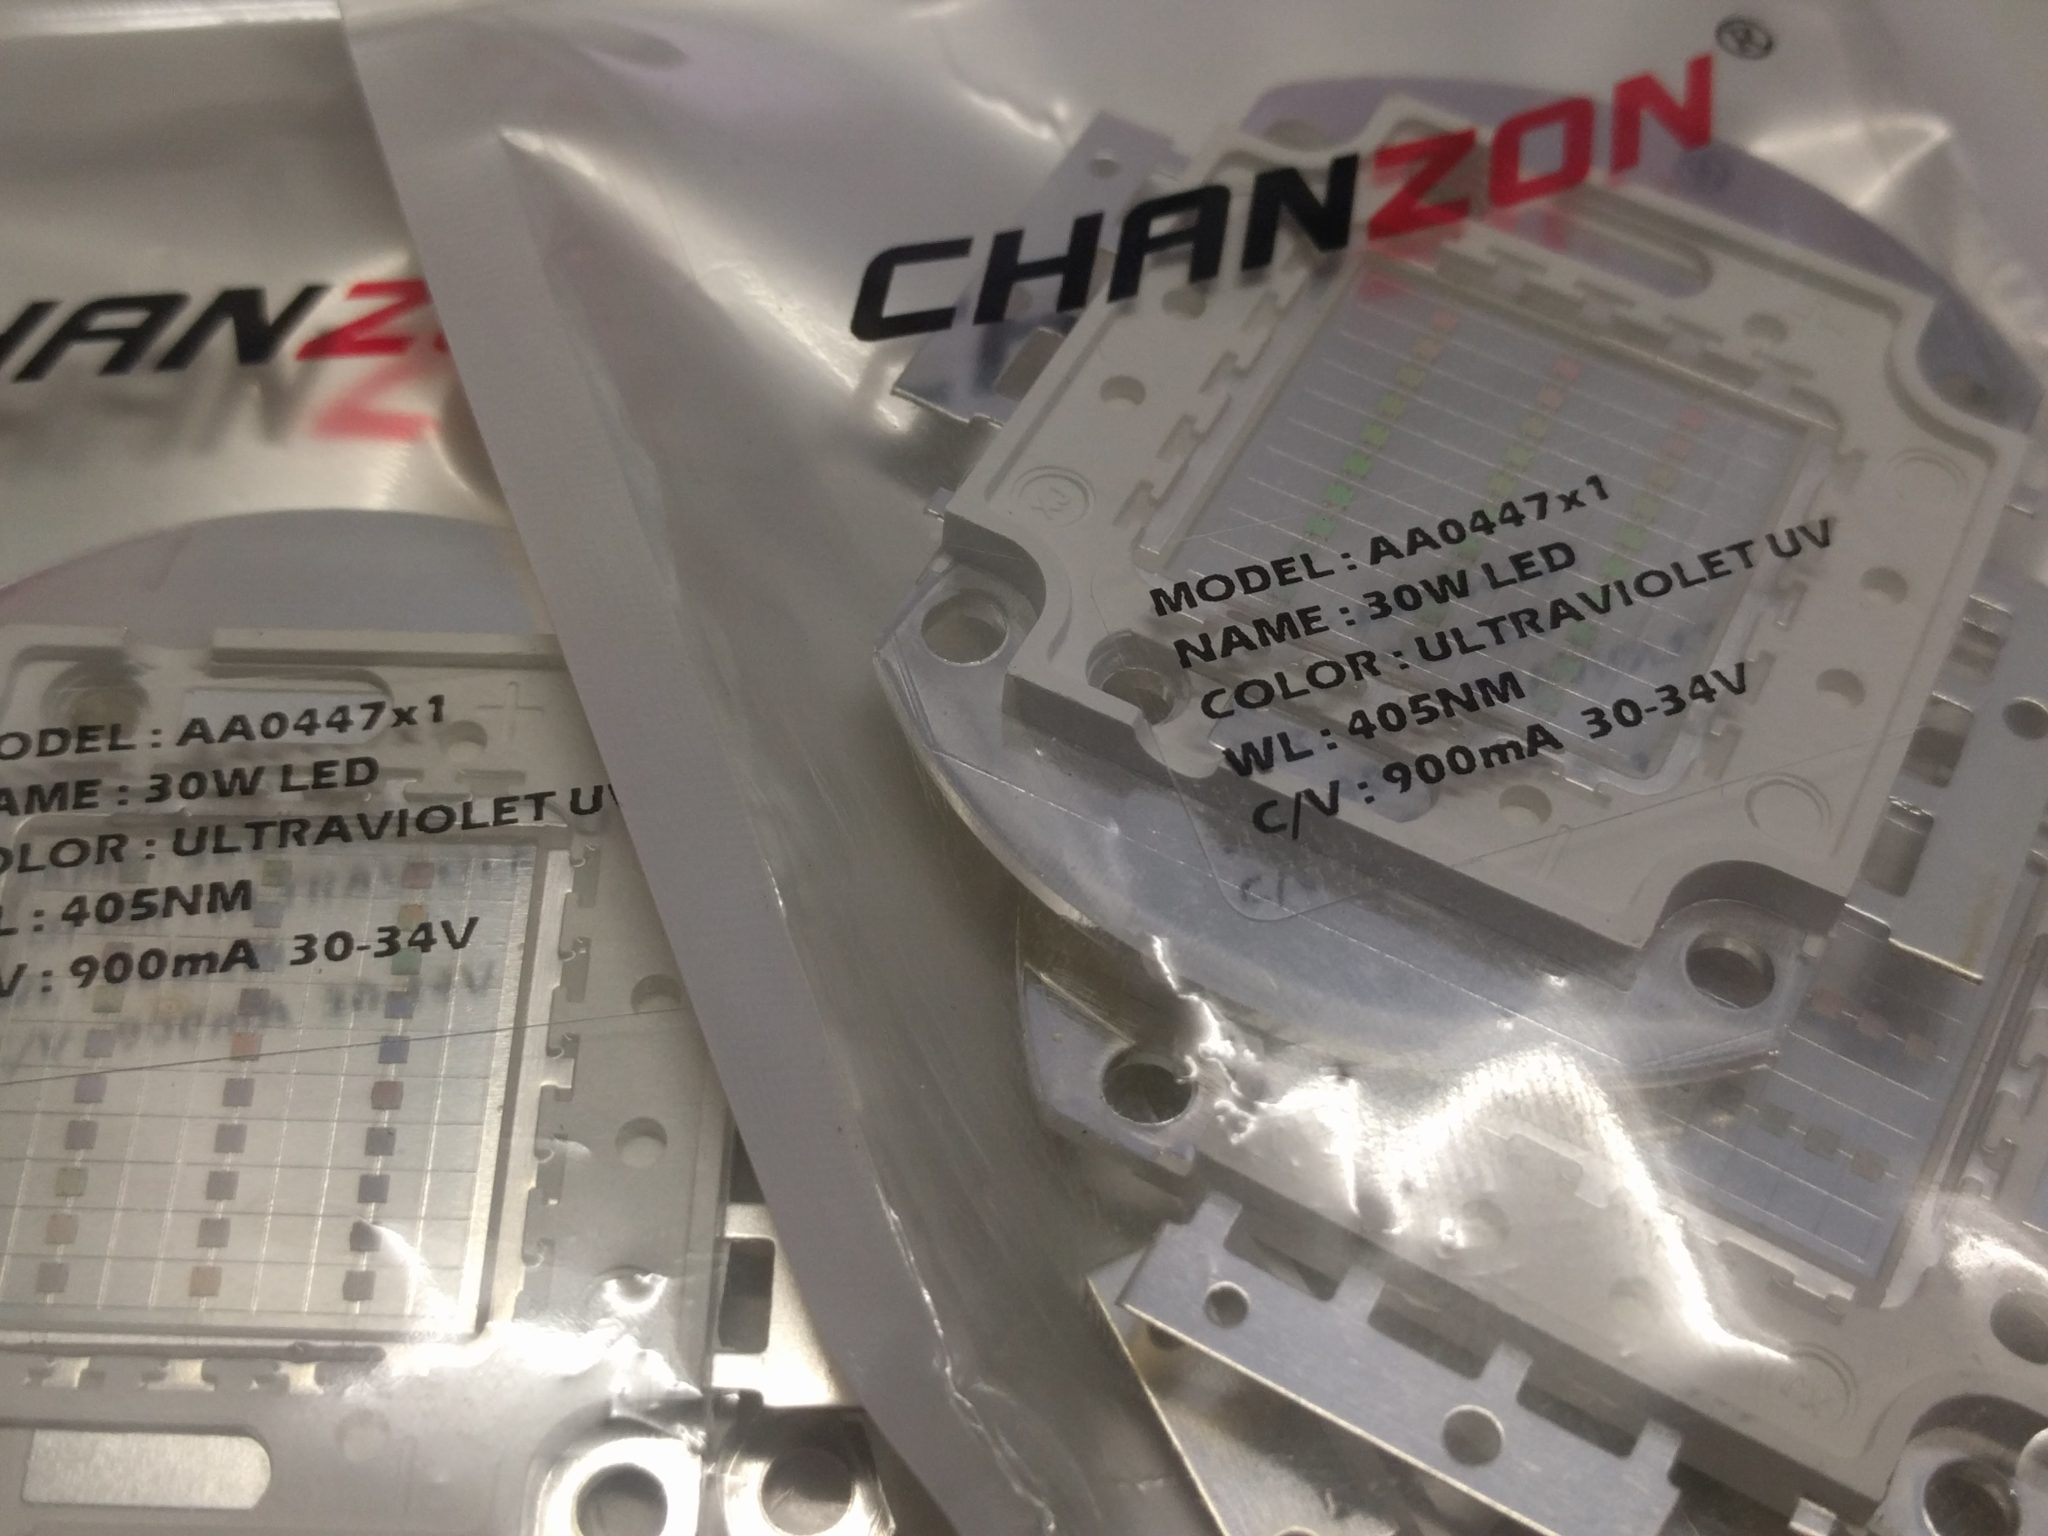 Chanzon UV LED 30W